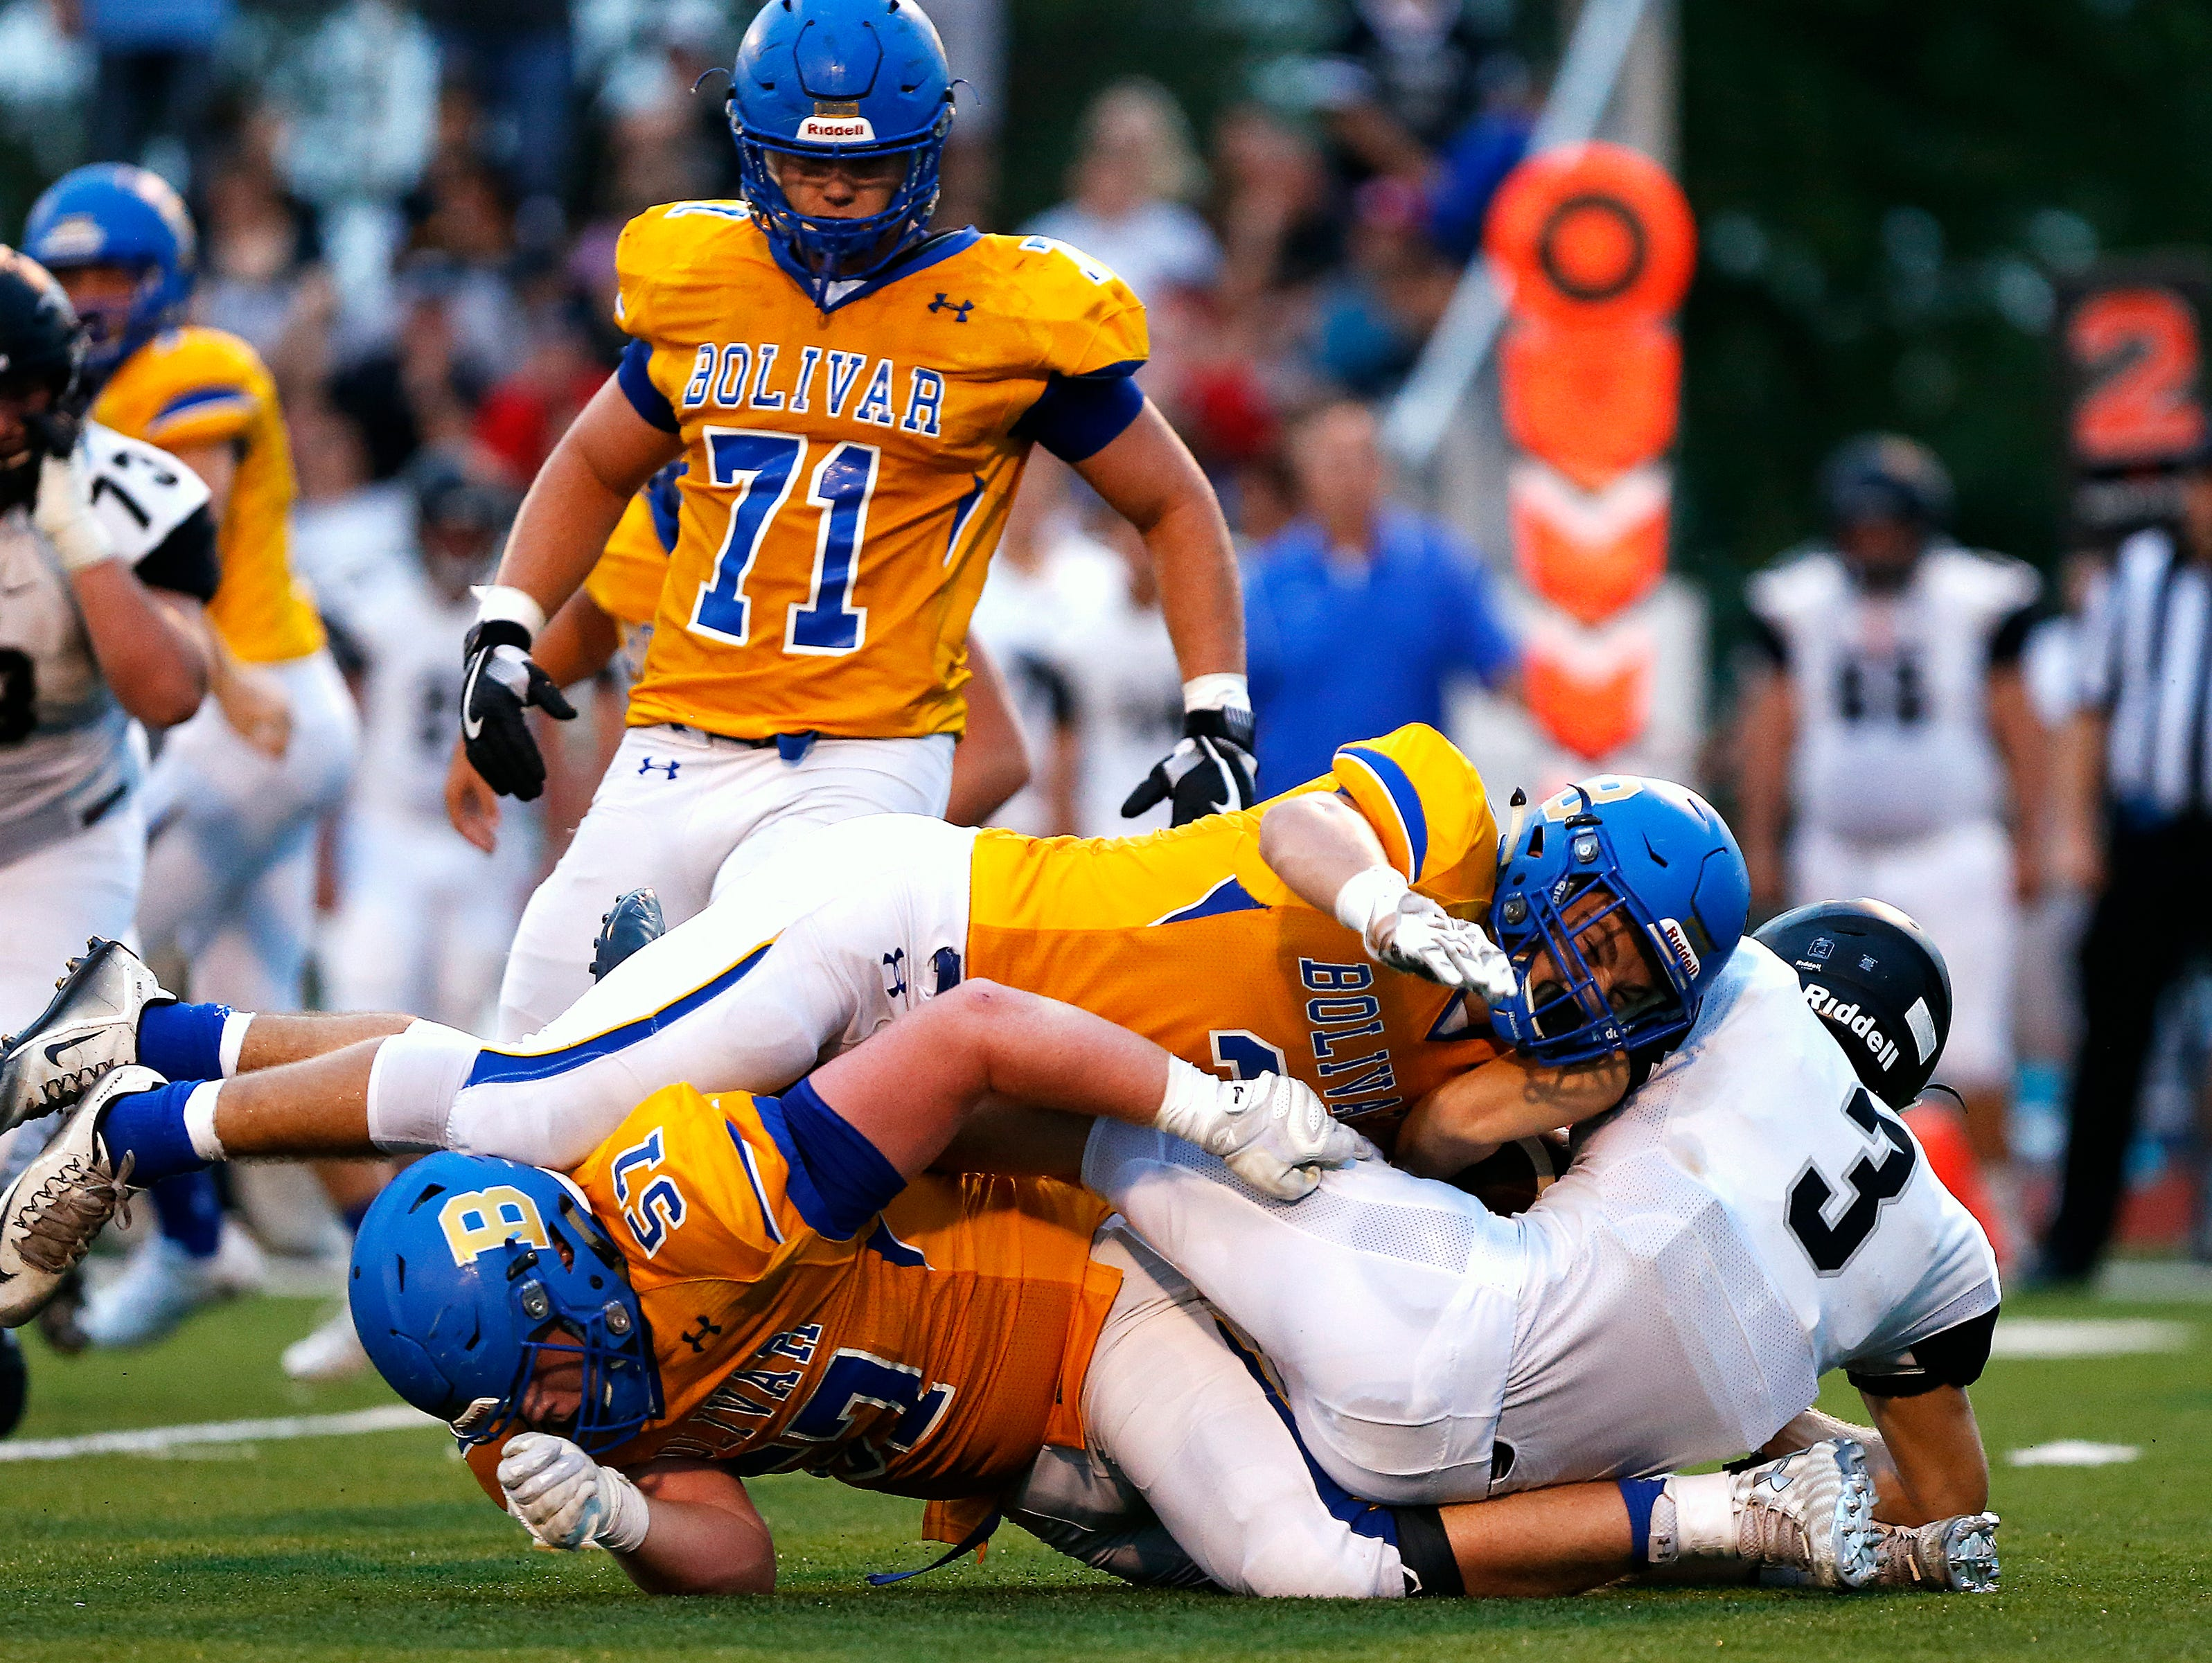 Willard High School running back Brock Howard (3) is tackled by Liberators lineman Zach Howard (57) and linebacker Bradley Thomas (3) during first quarter action of the Liberators' football game against Willard High School held at Plaster Stadium in Bolivar, Mo. on Aug. 26, 2016.